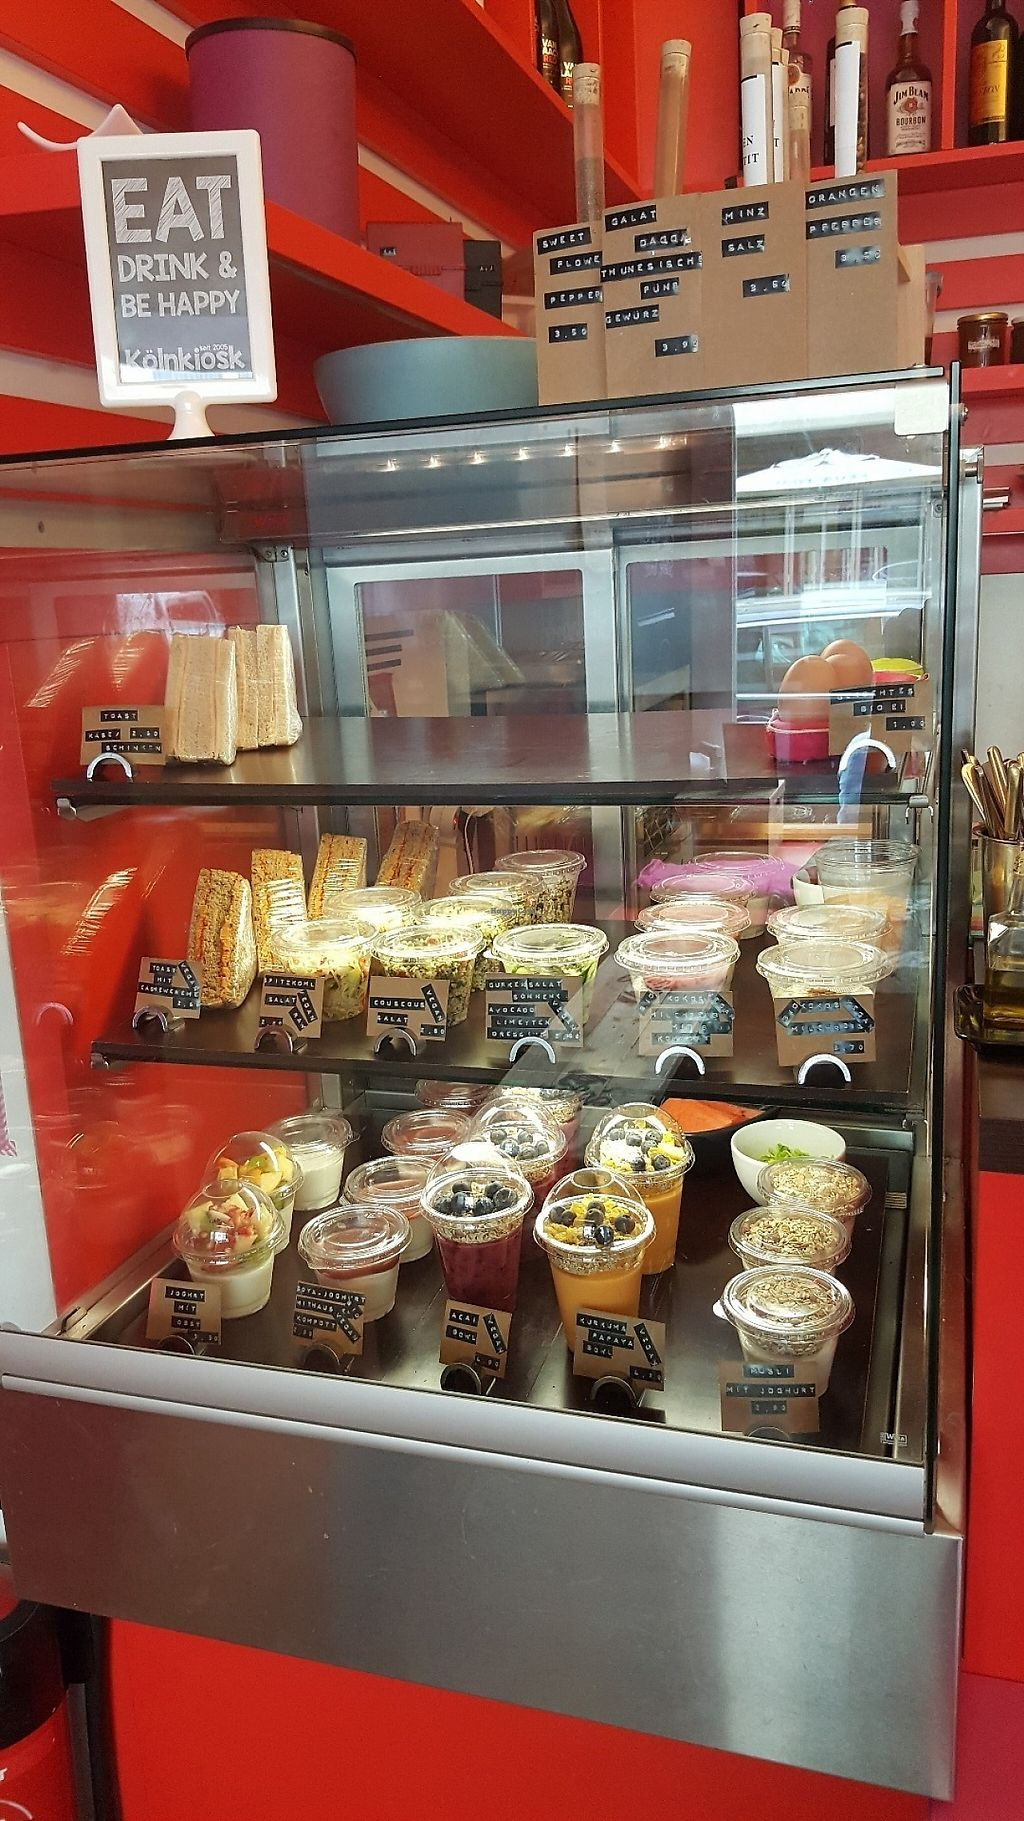 """Photo of Koln Kiosk  by <a href=""""/members/profile/TinaEstrella"""">TinaEstrella</a> <br/>Granola, fruit bowls, salads, sandwiches <br/> May 29, 2017  - <a href='/contact/abuse/image/92864/263698'>Report</a>"""